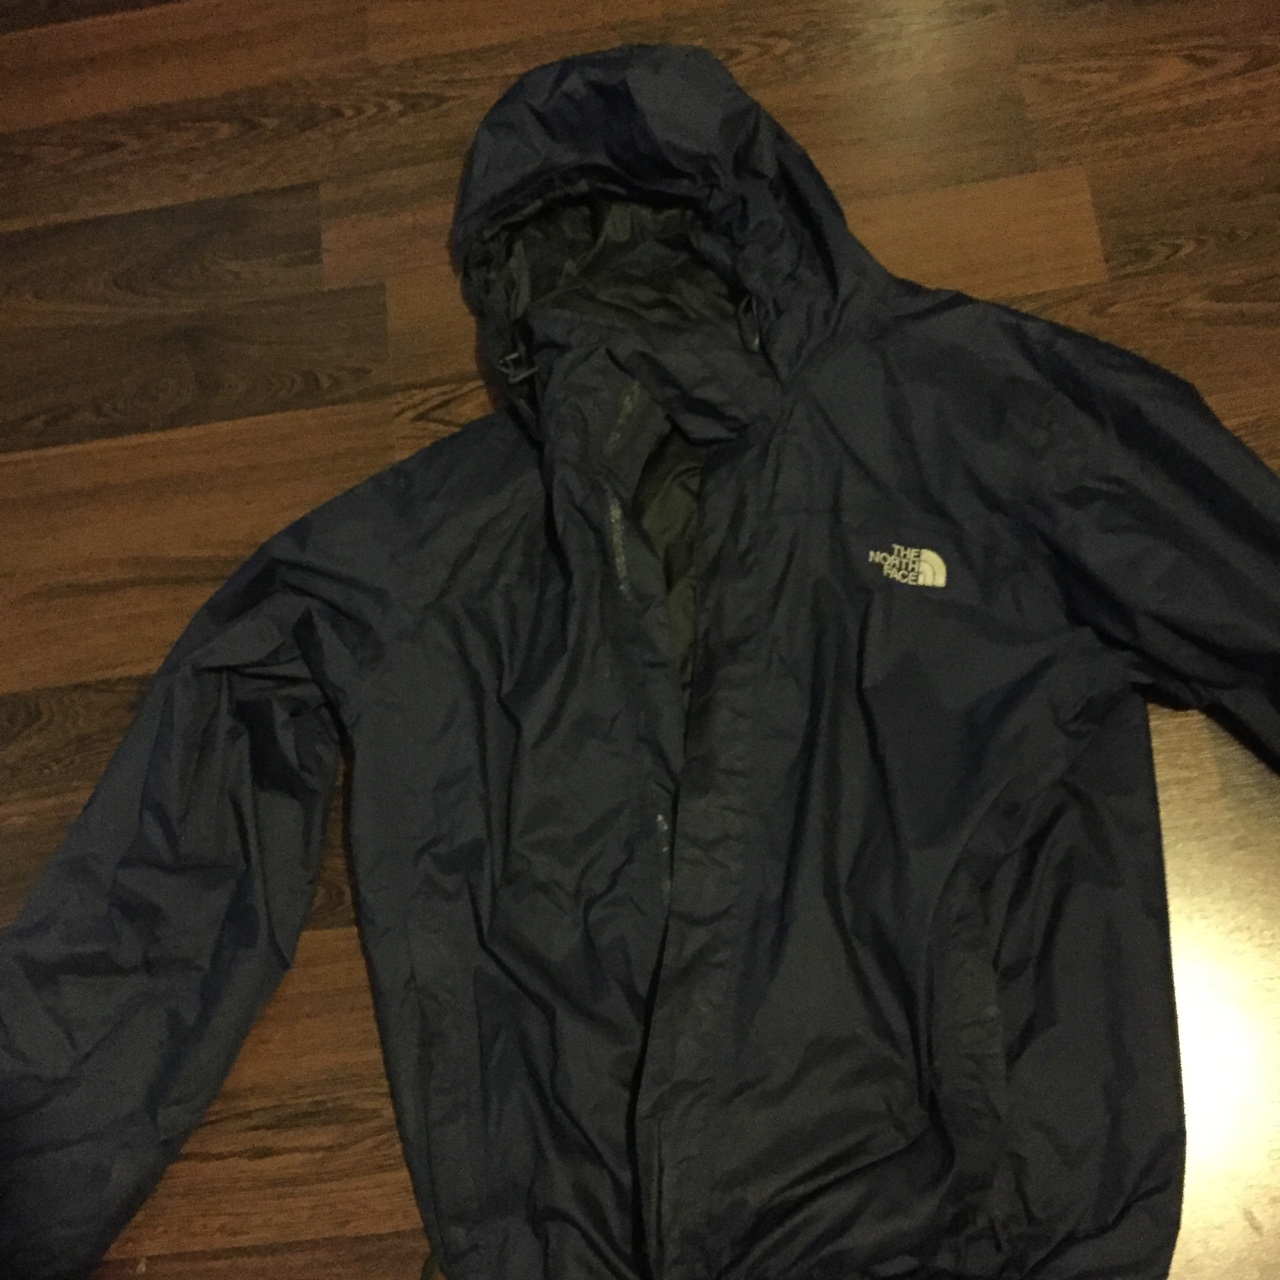 North Face Hyvent jacket in great condition in NAVY Depop